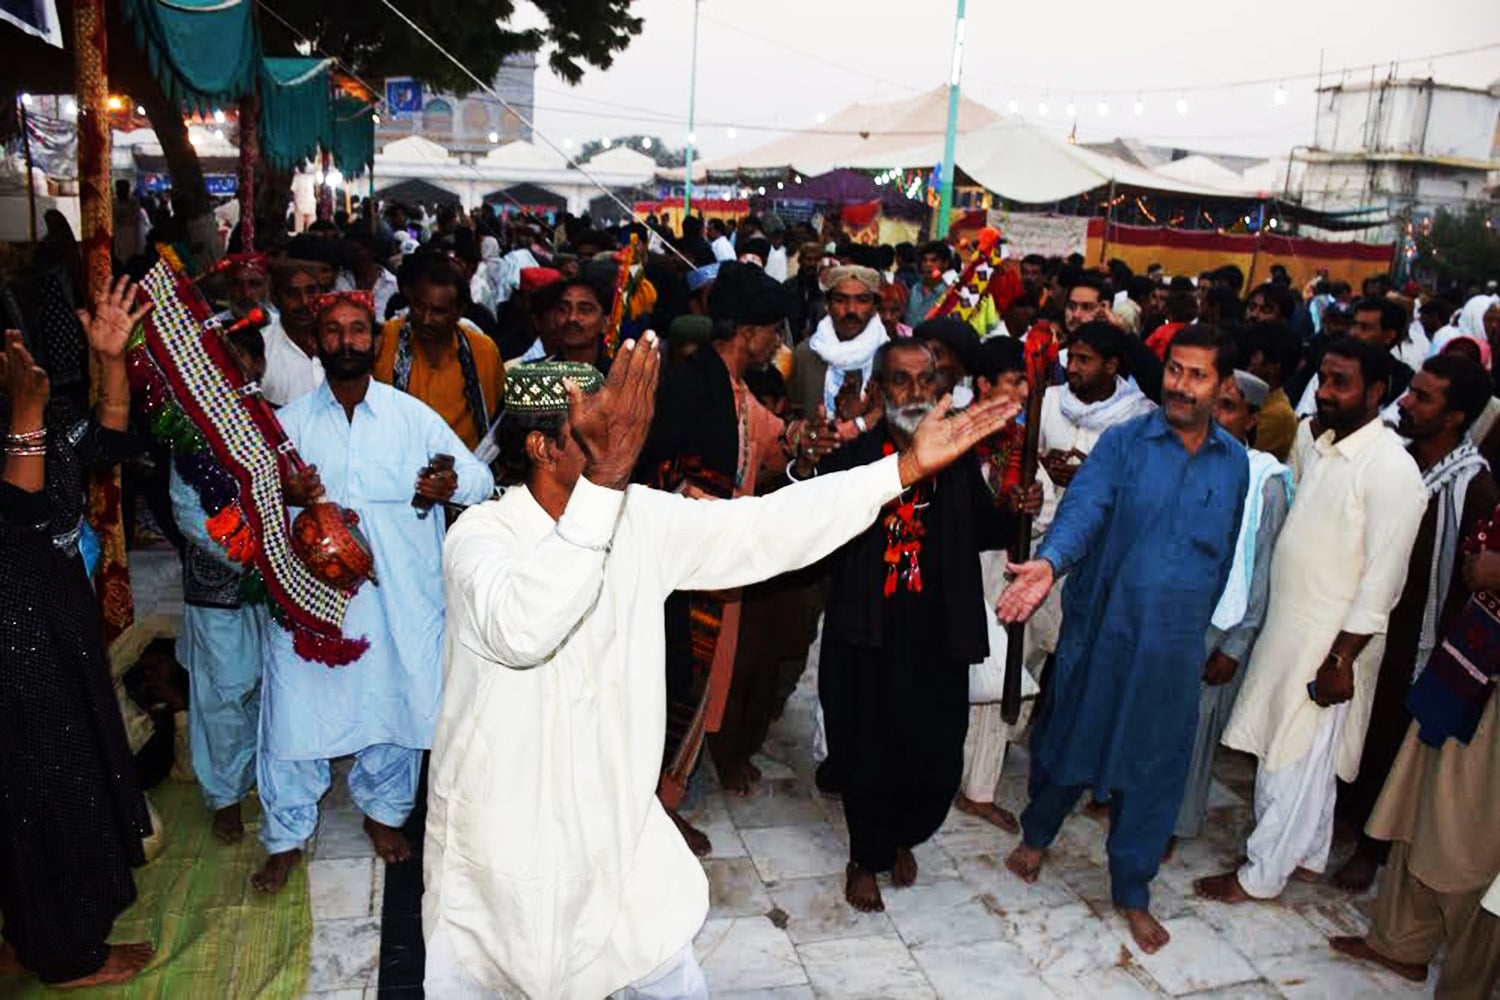 Devotees enter shrine while reciting mystic poetry of great sufi saint.